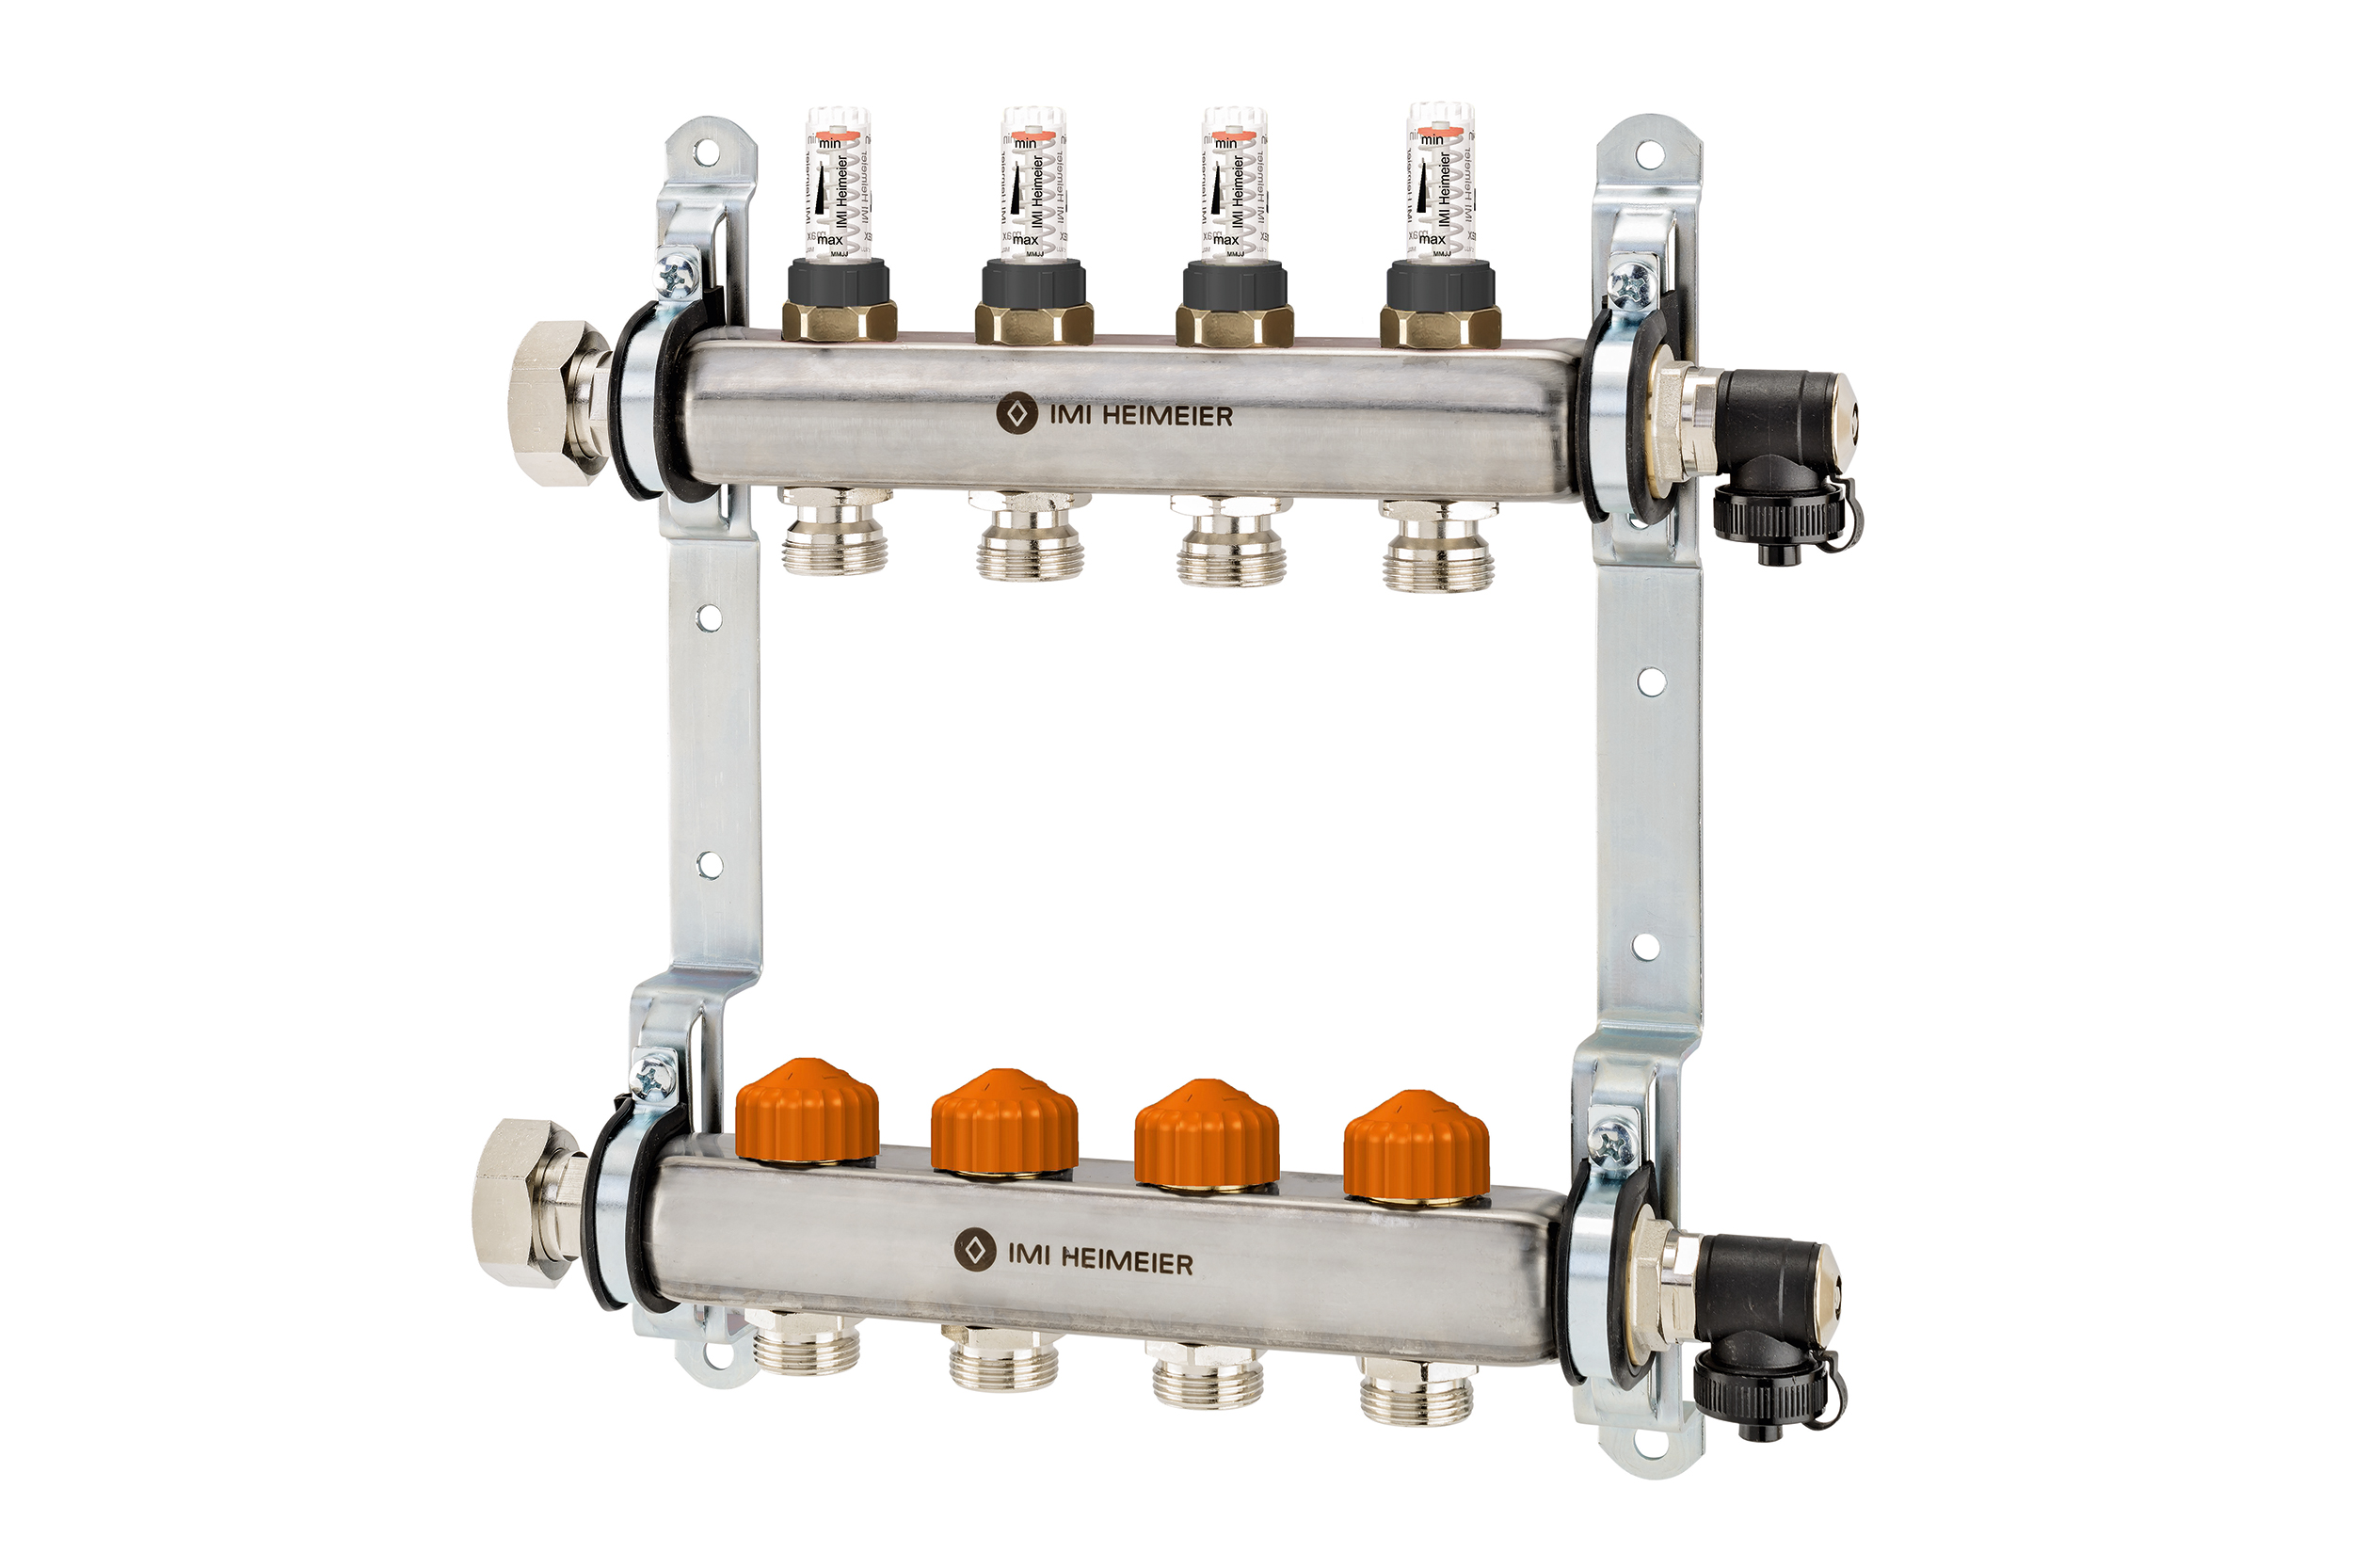 Design Plus Powered By Ish Circuit Moreover Taps Control Additionally Volume Controller Dynacon Eclipse Floor Heating Manifold